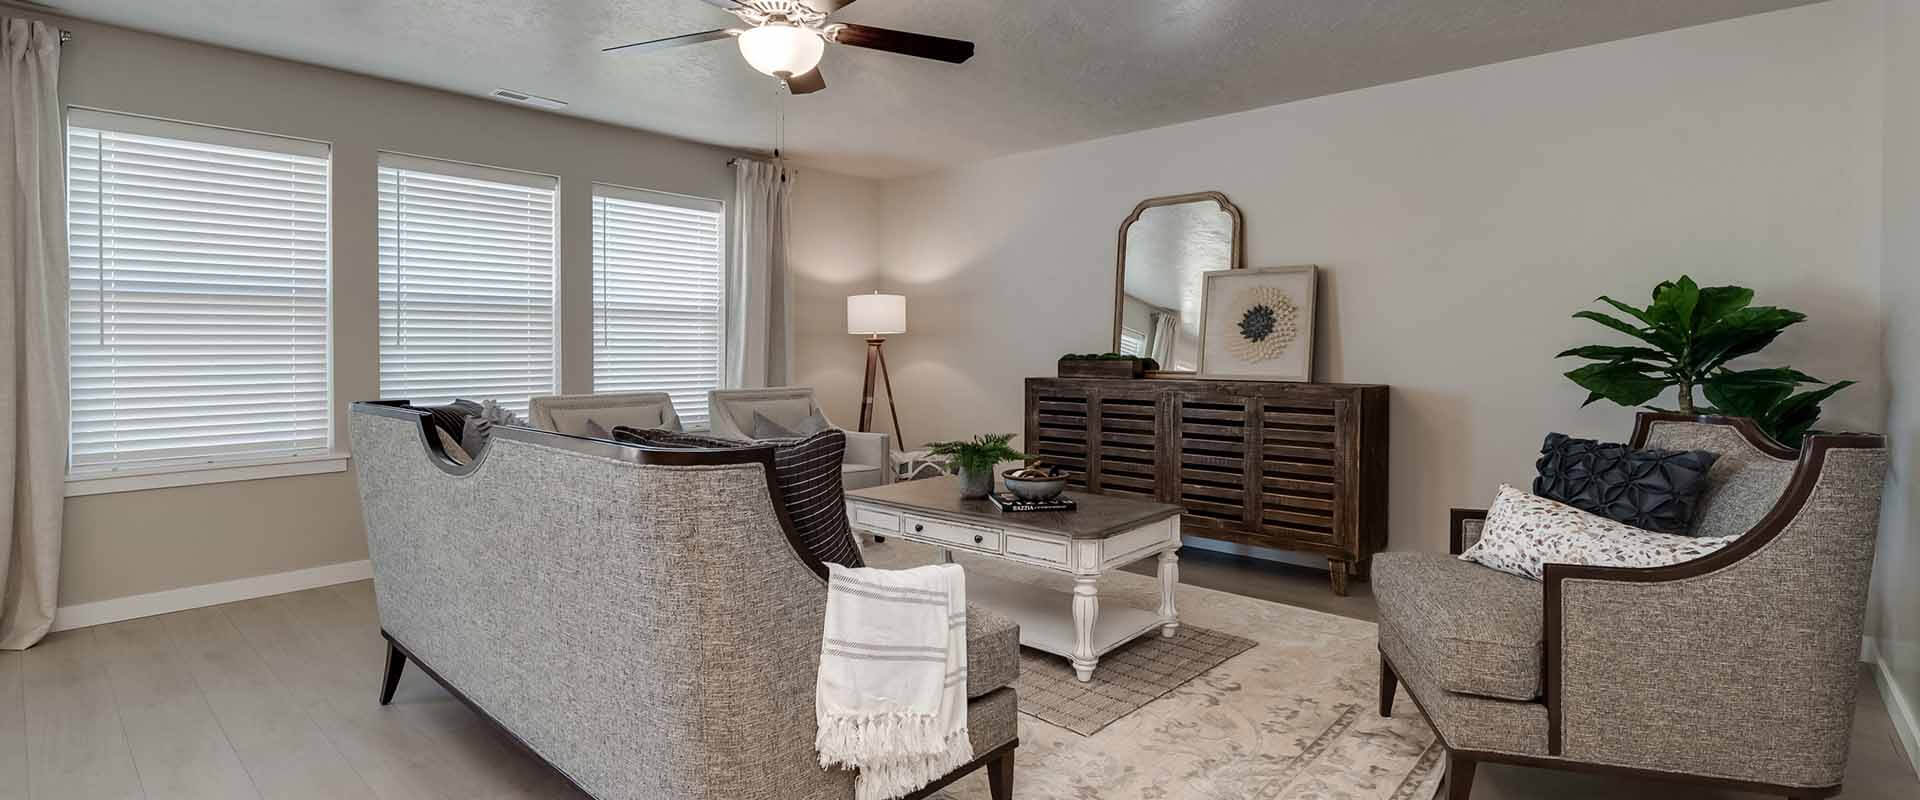 Garnet_Hubble_Homes_New_Homes_Boise_Great Room.jpg